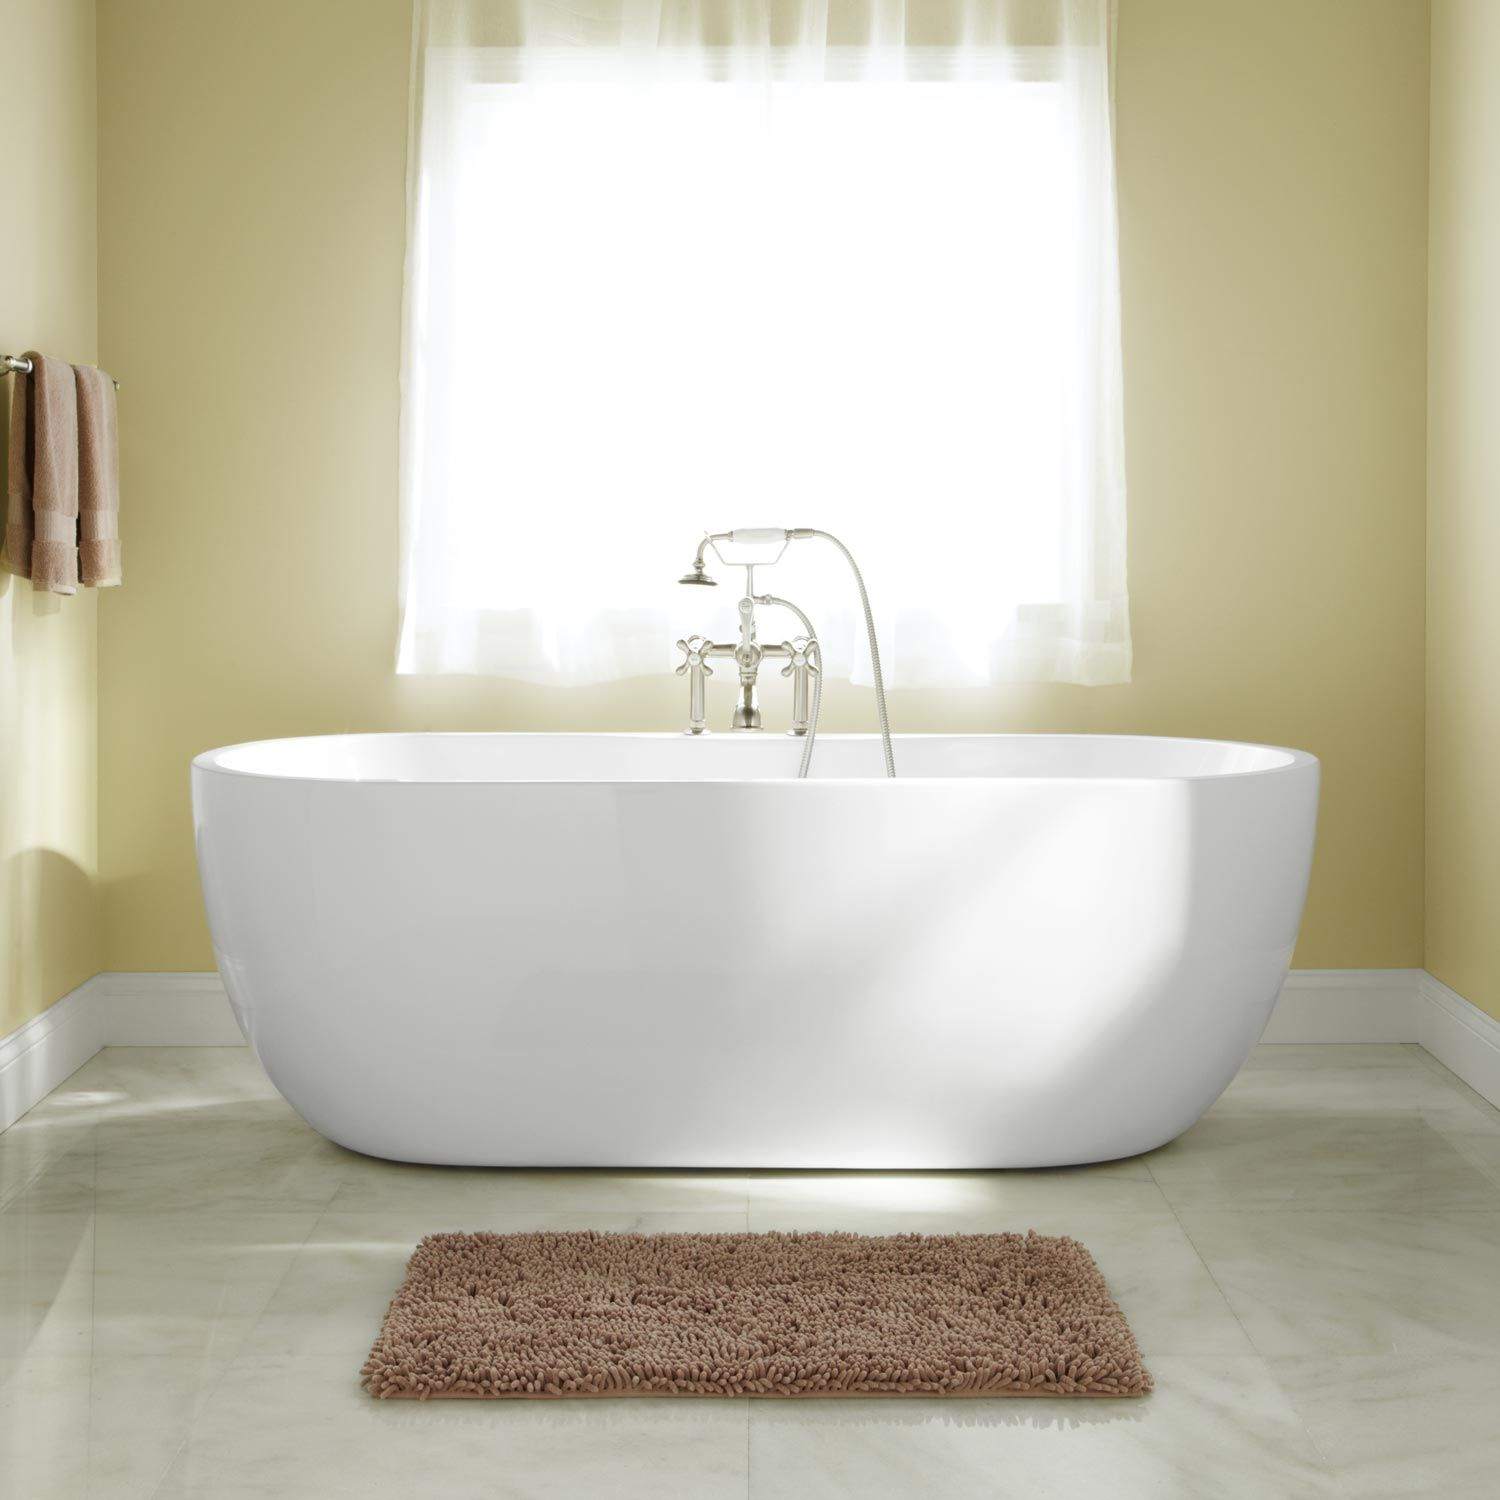 Rotunda Tub And Shower Set 5 With Curved Single Hole Sink Faucet